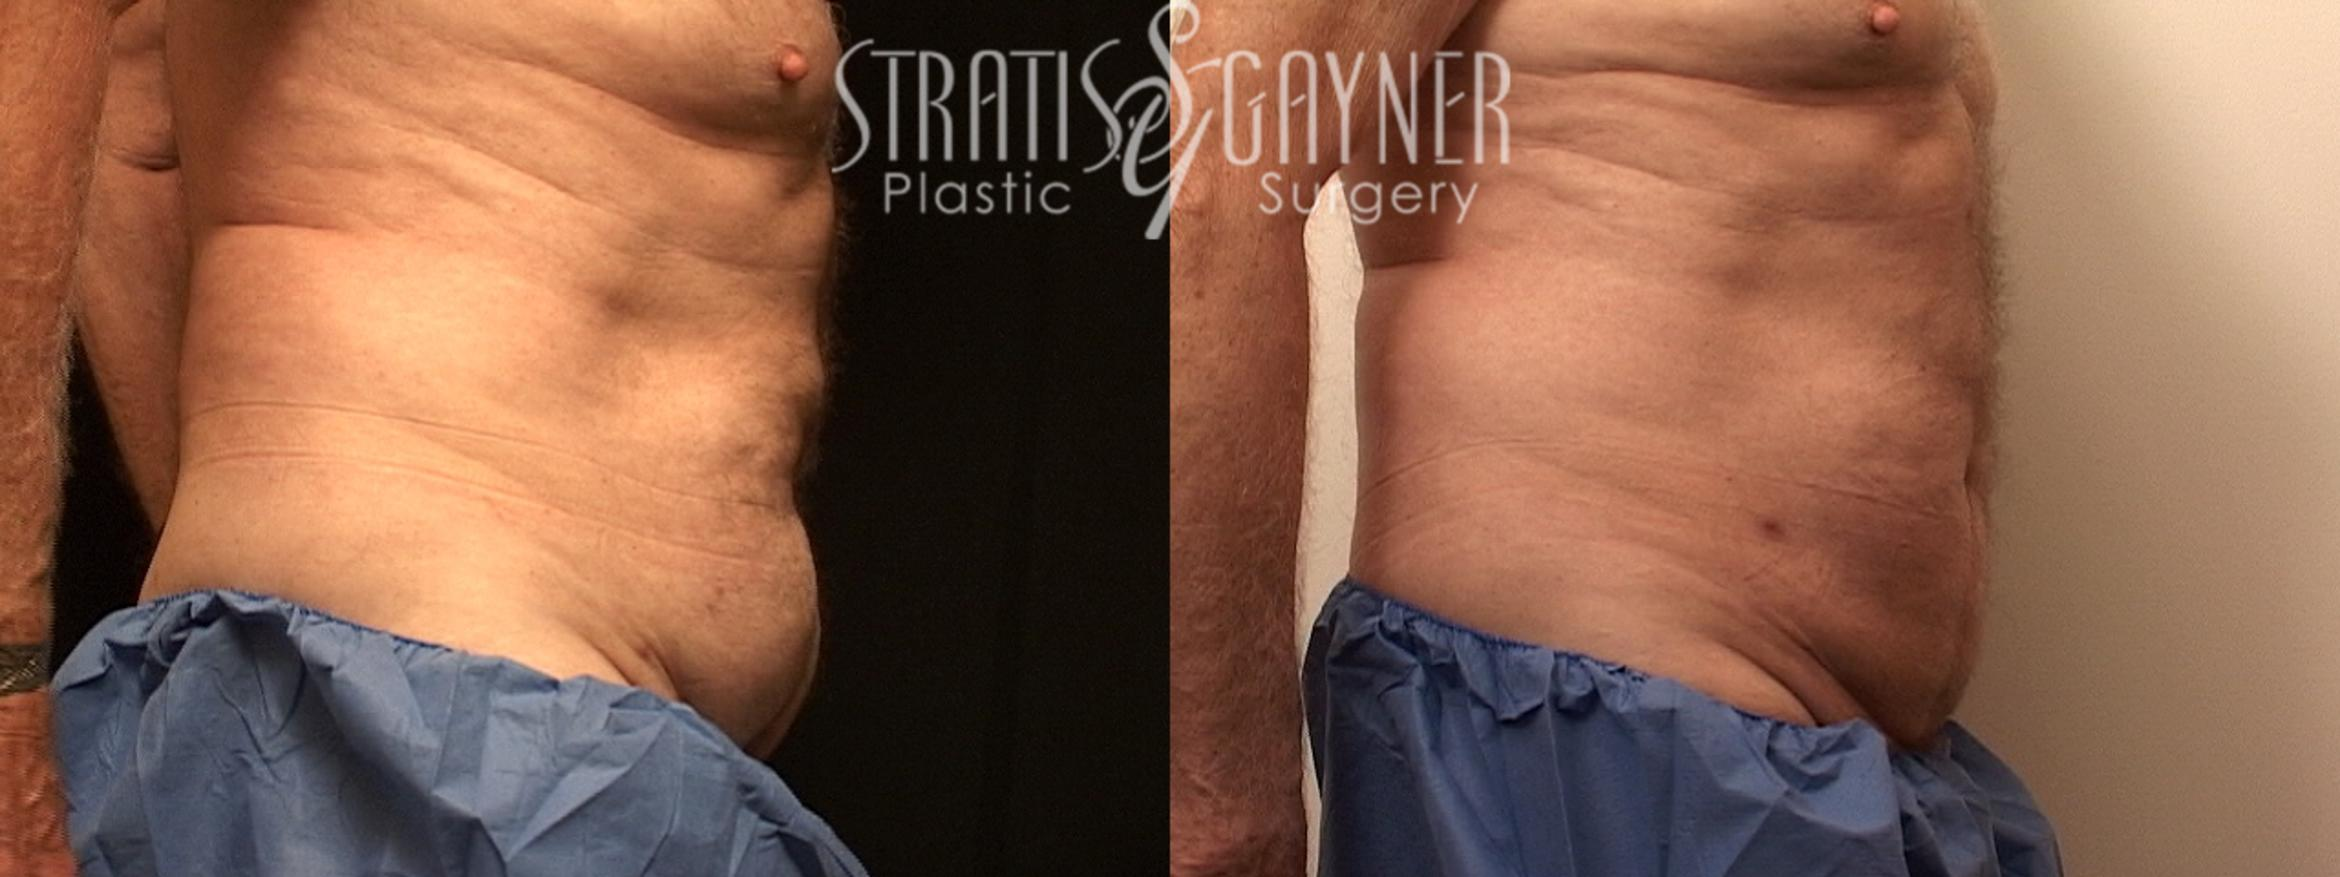 Liposuction Case 127 Before & After View #4 | Harrisburg, PA | Stratis Gayner Plastic Surgery